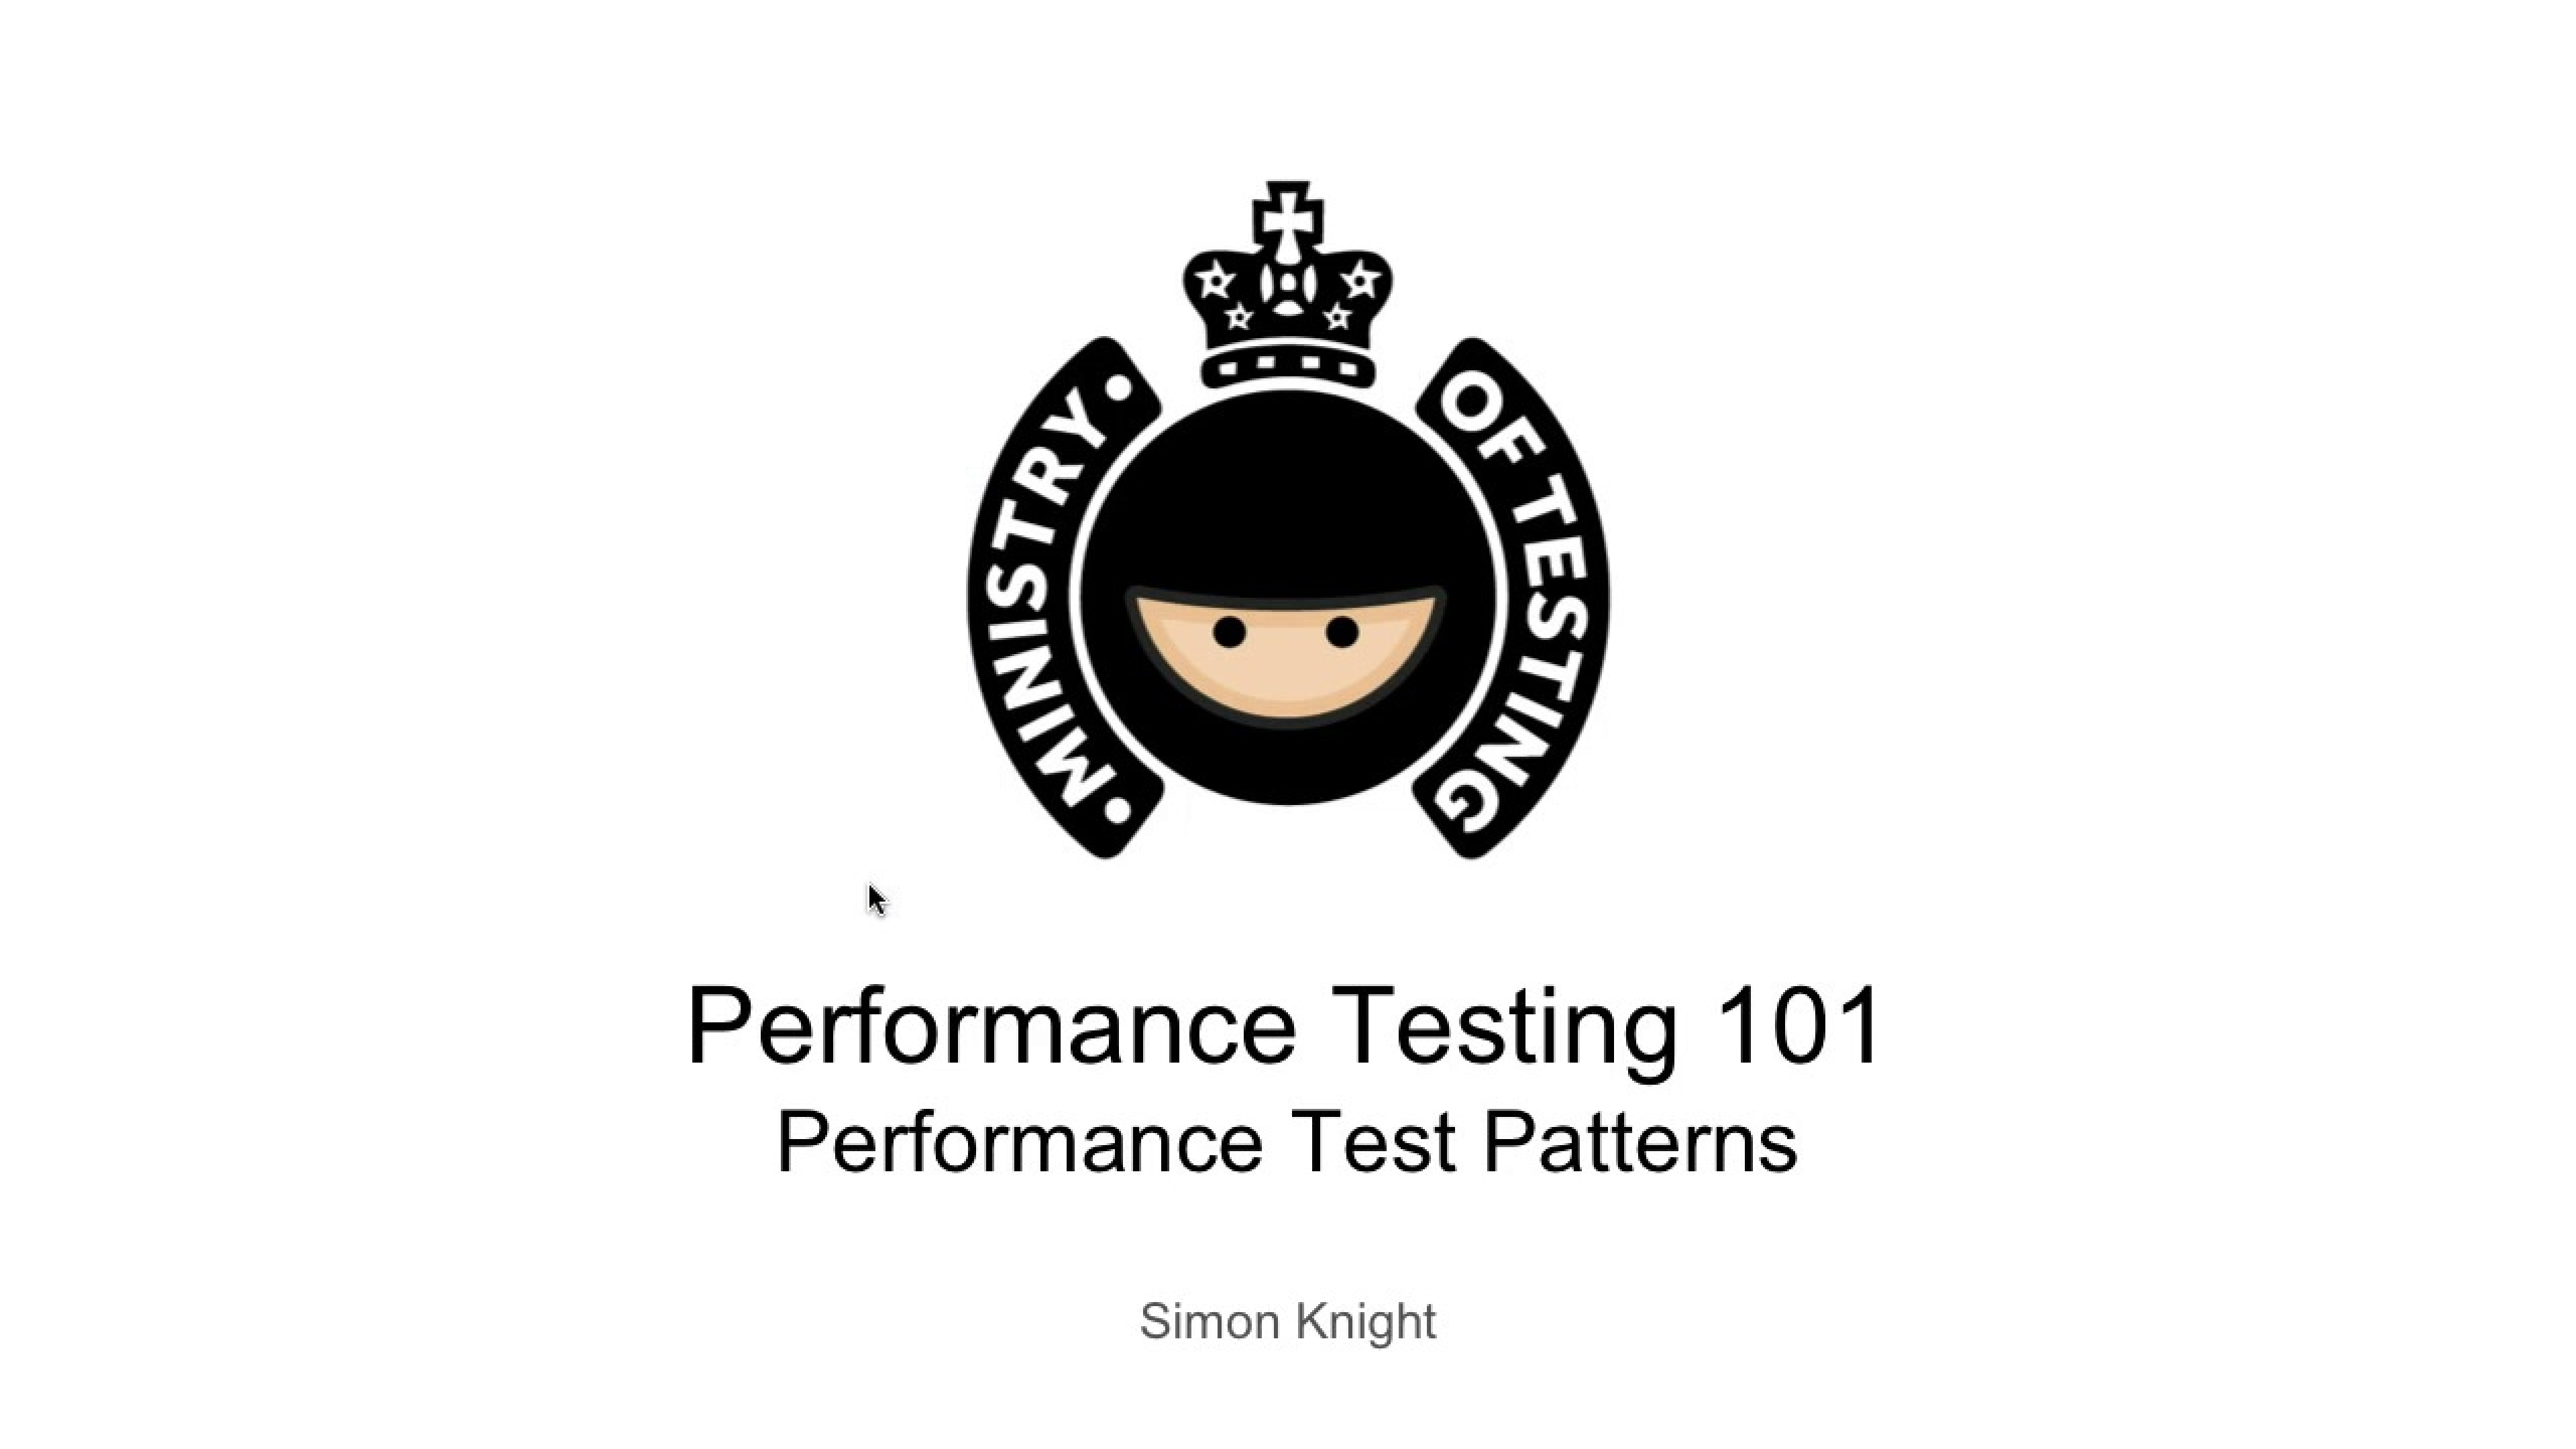 Variations on a Theme - Performance Testing Patterns